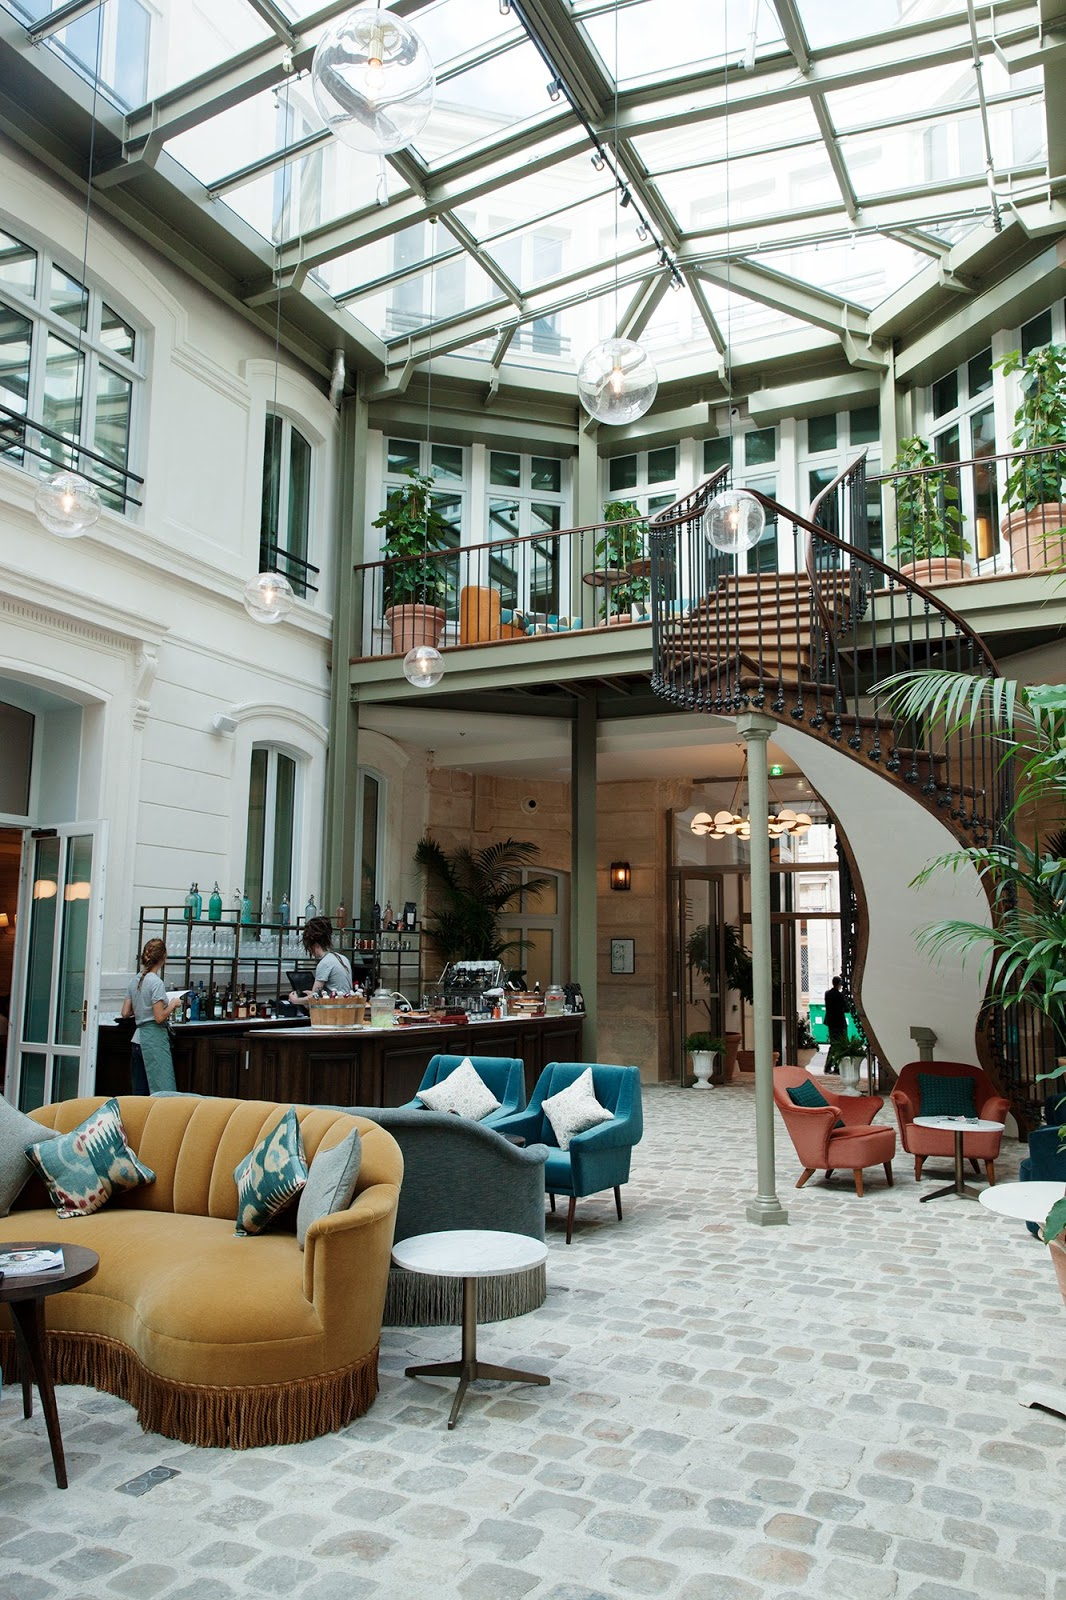 Travel Destinations : The Hoxton Hotel in Paris. | Cool